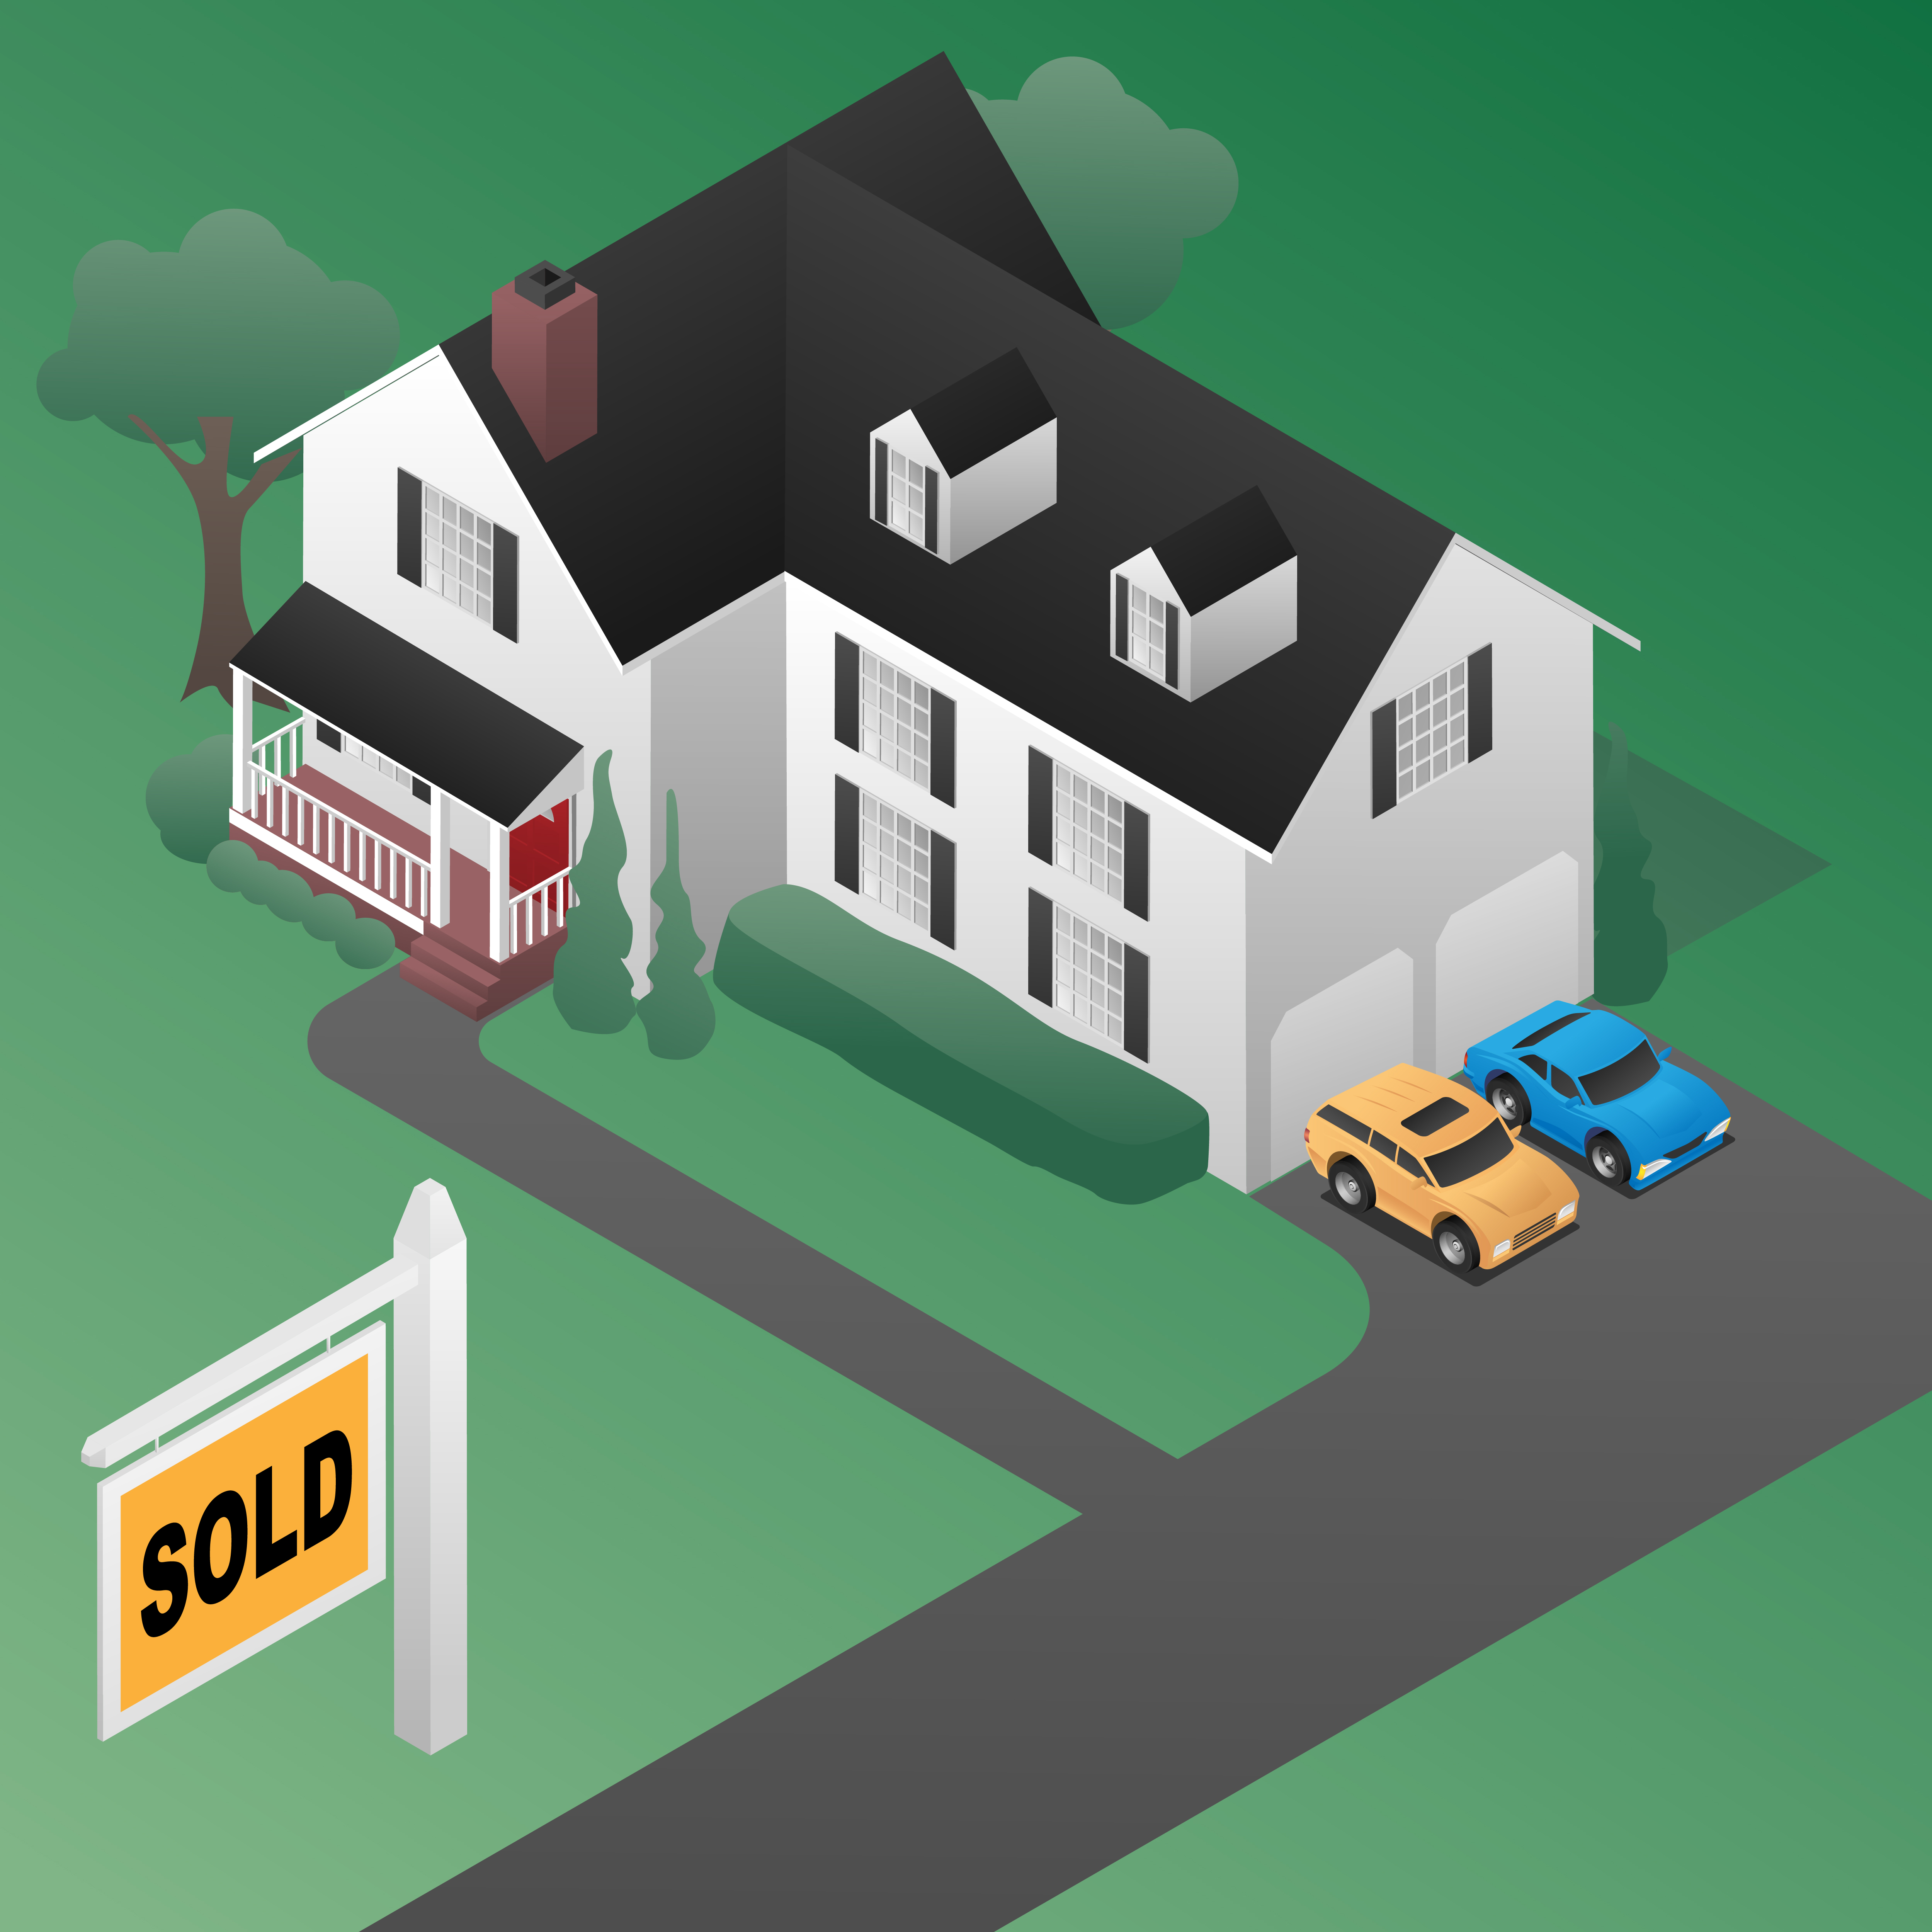 For Sale Sold Sign: (58011 Free Downloads